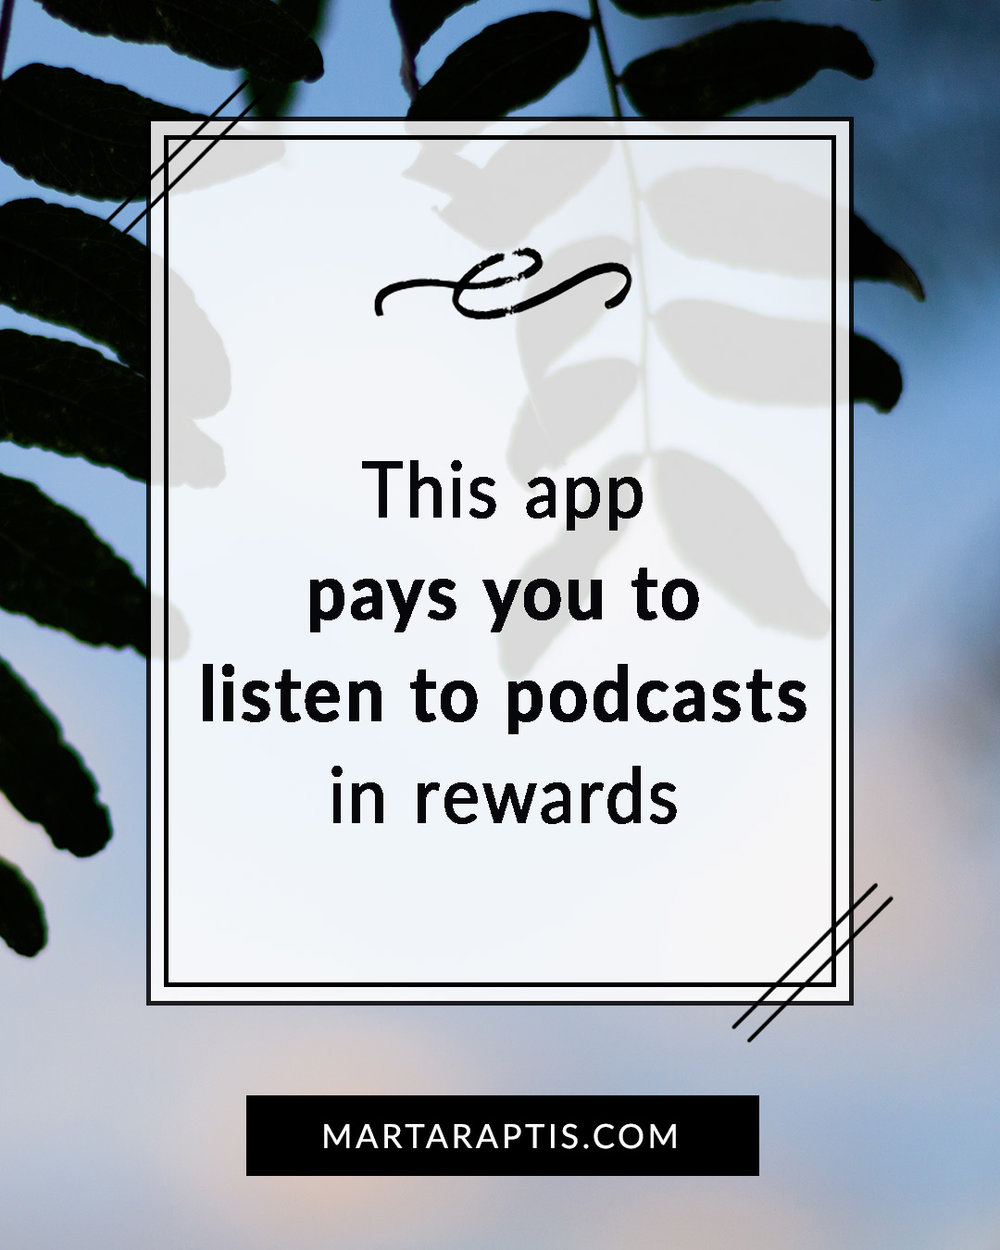 Get paid to listen to podcasts